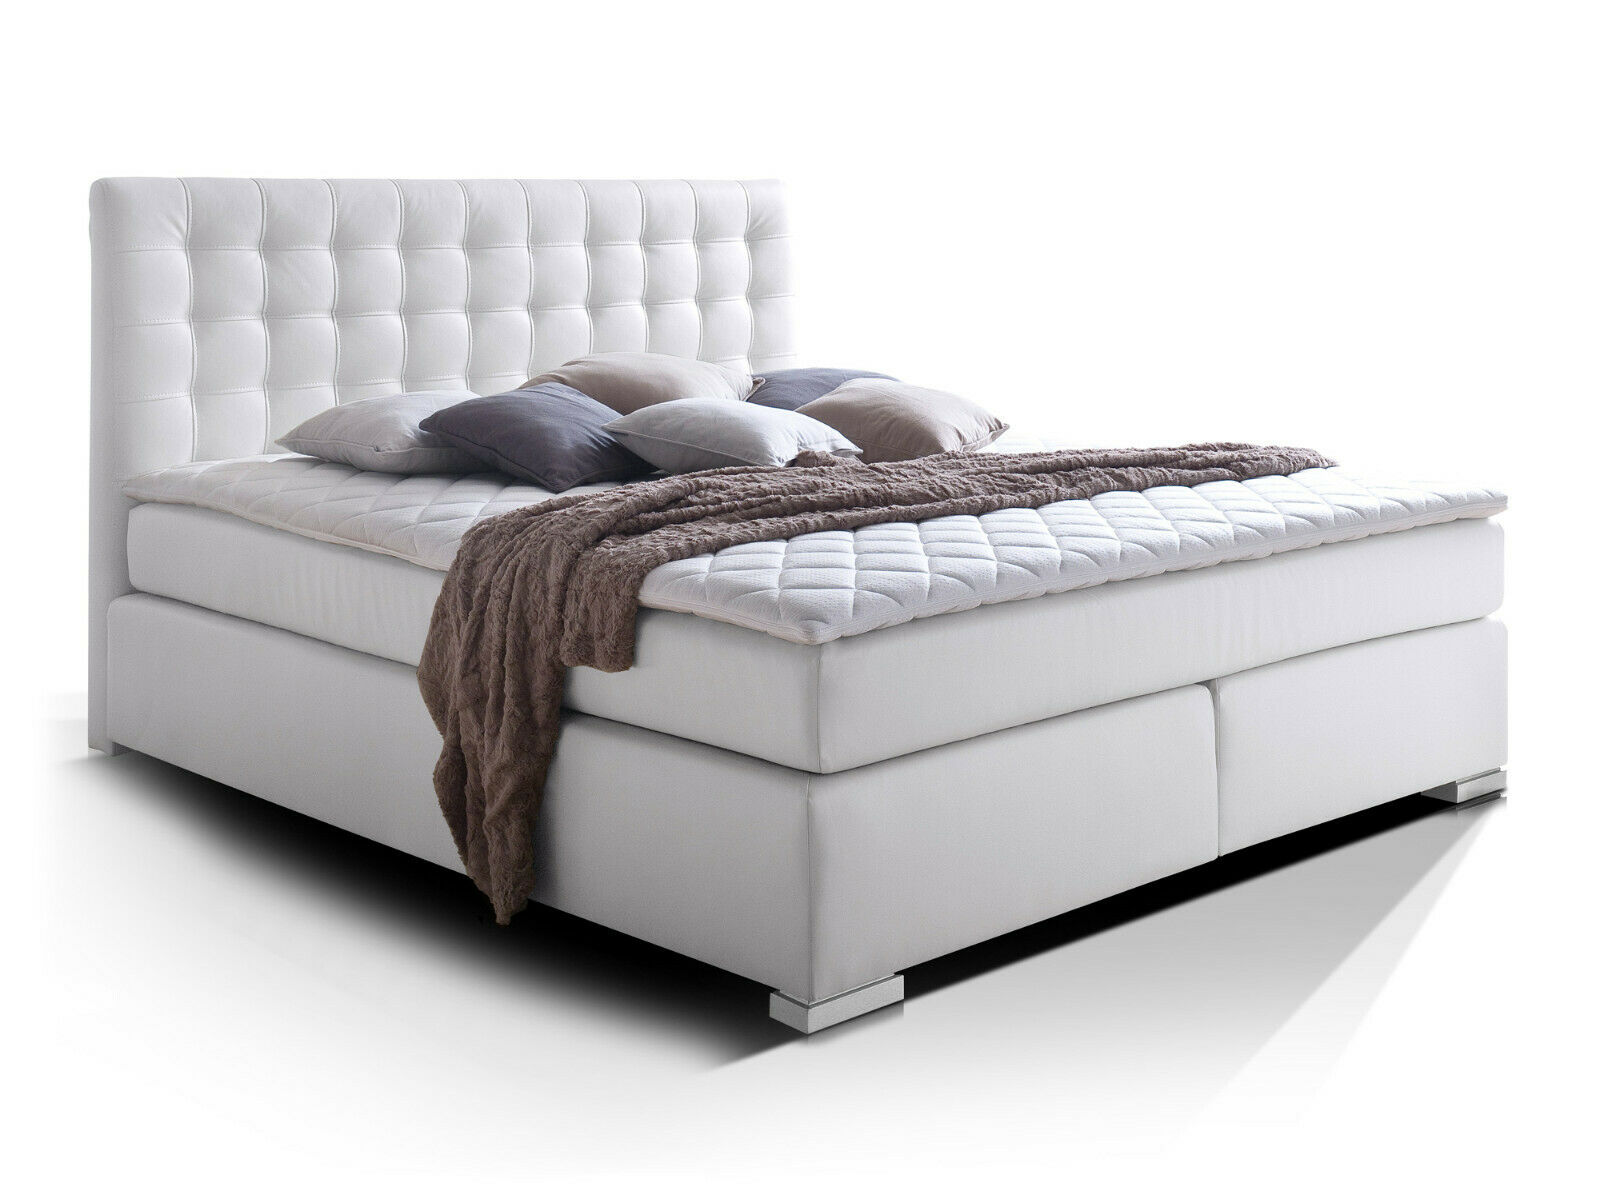 singlebett mehr als 100 angebote fotos preise. Black Bedroom Furniture Sets. Home Design Ideas